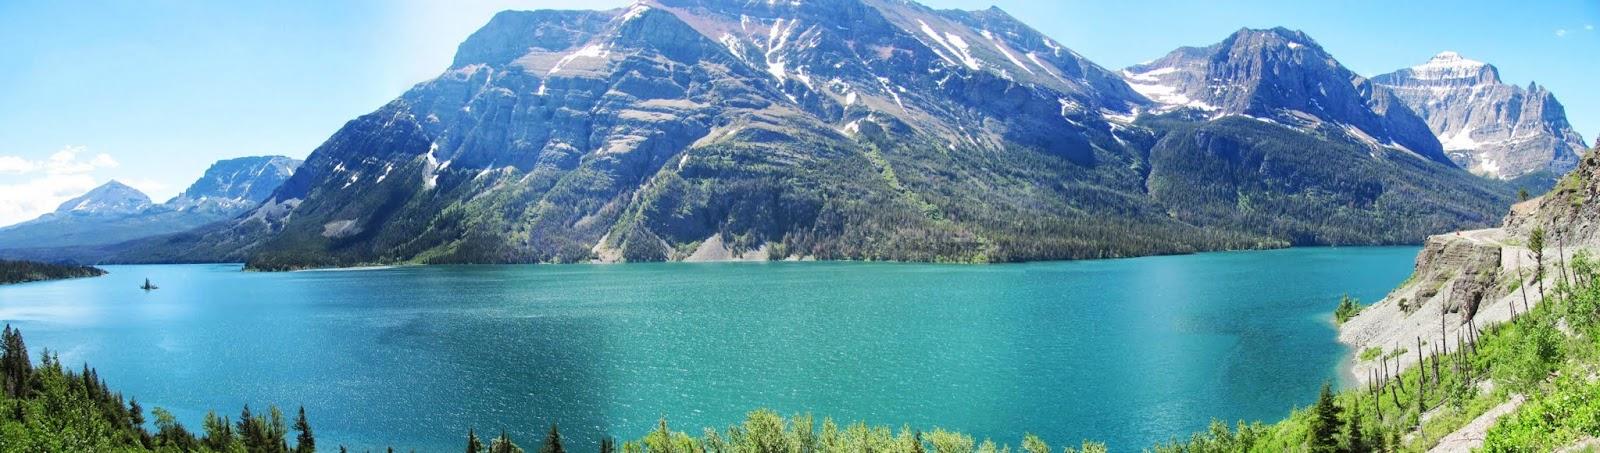 St. Mary Lake seen on a panoramic view from three photographs at Glacier National Park in Montana